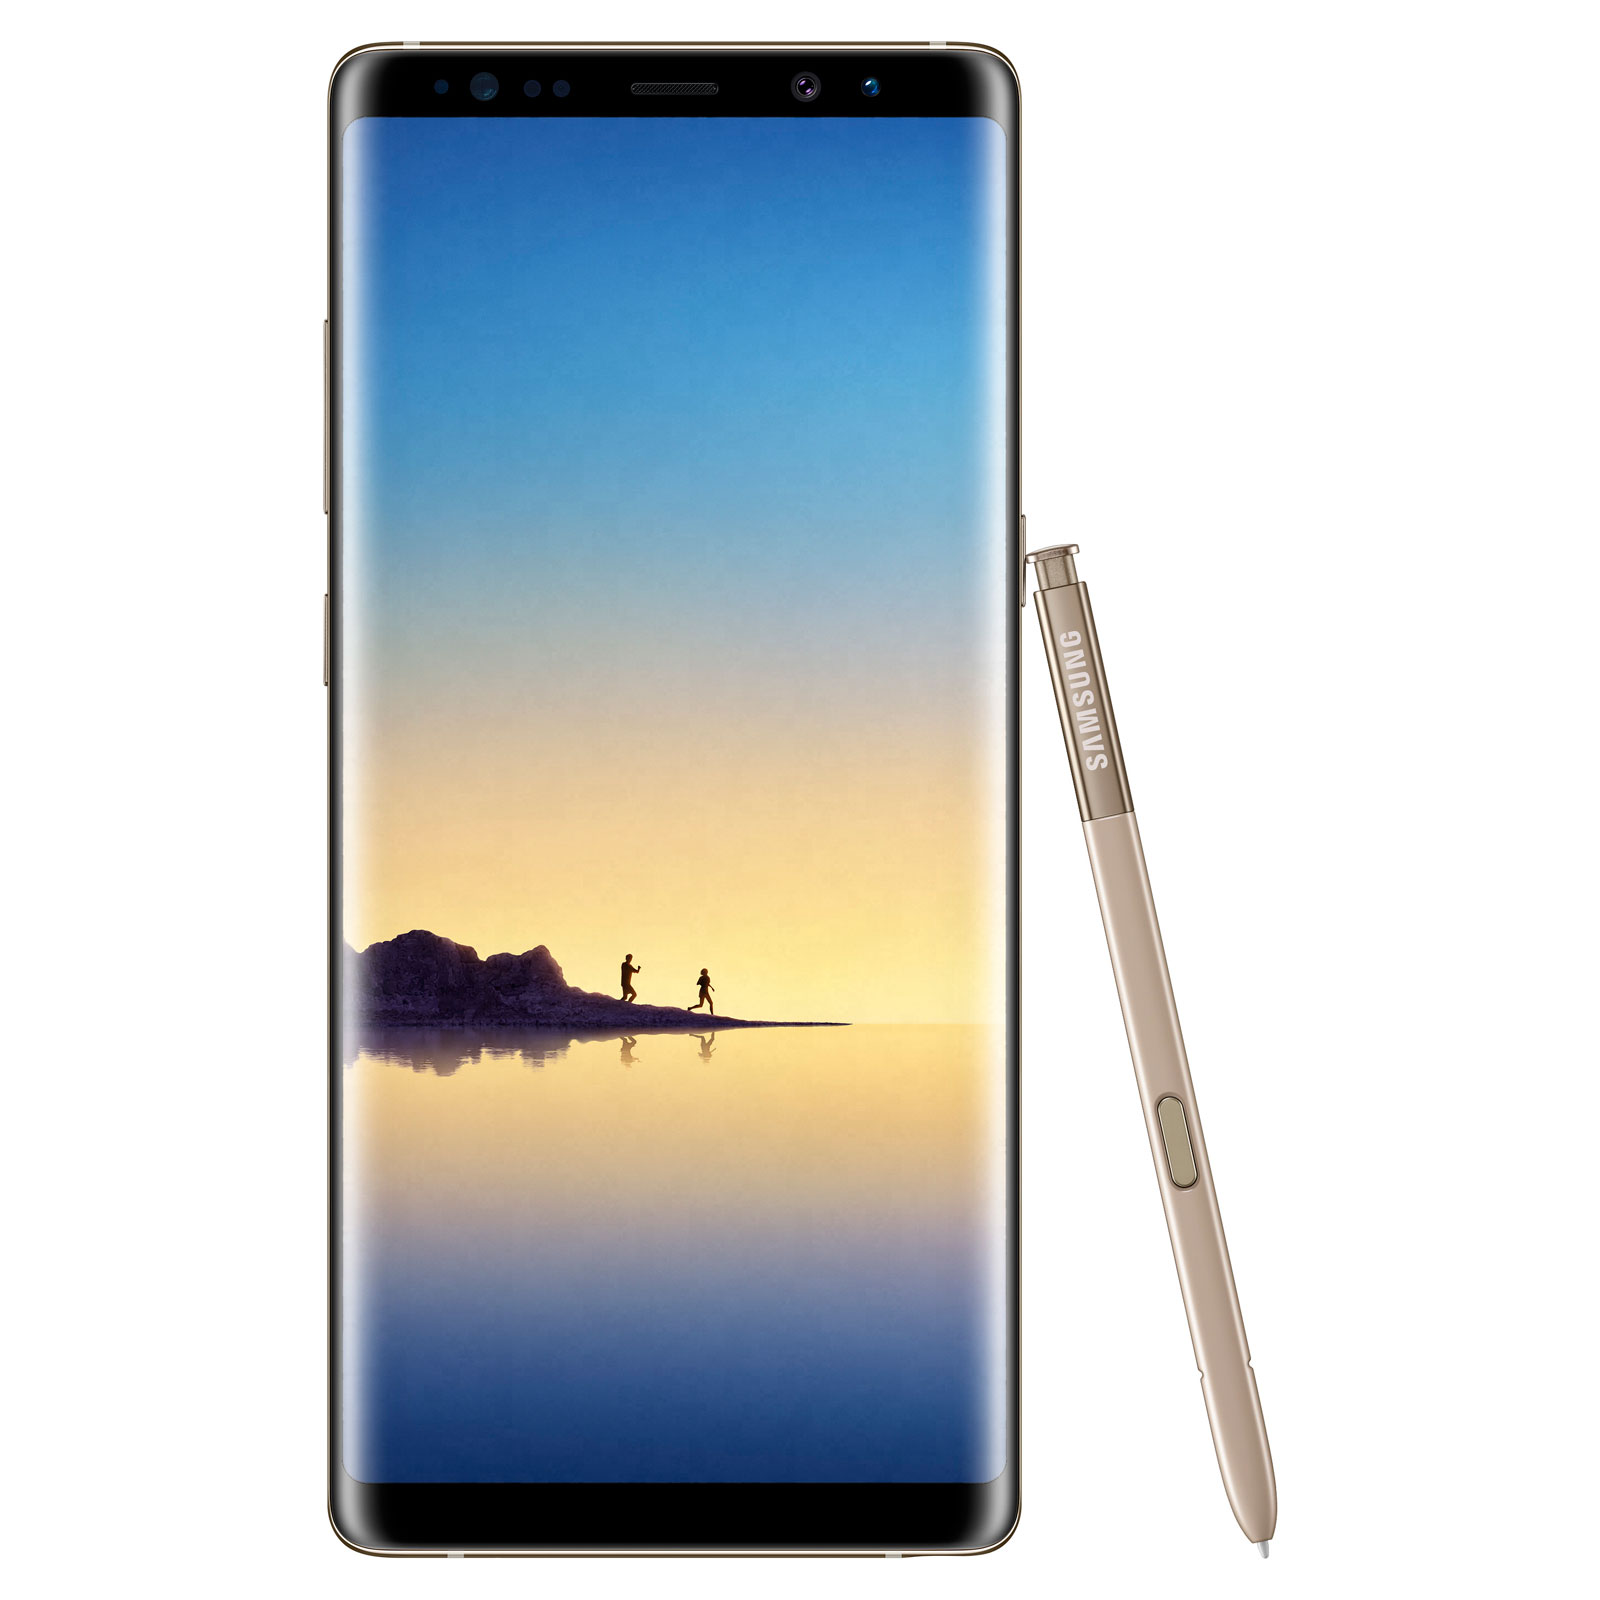 "Mobile & smartphone Samsung Galaxy Note 8 SM-N950 Or 64 Go Smartphone 4G-LTE Advanced IP68 - Exynos 8895 8-Core 2.3 Ghz - RAM 6 Go - Ecran tactile 6.3"" 1440 x 2960 - 64 Go - NFC/Bluetooth 5.0 - 3300 mAh - Android 7.1"